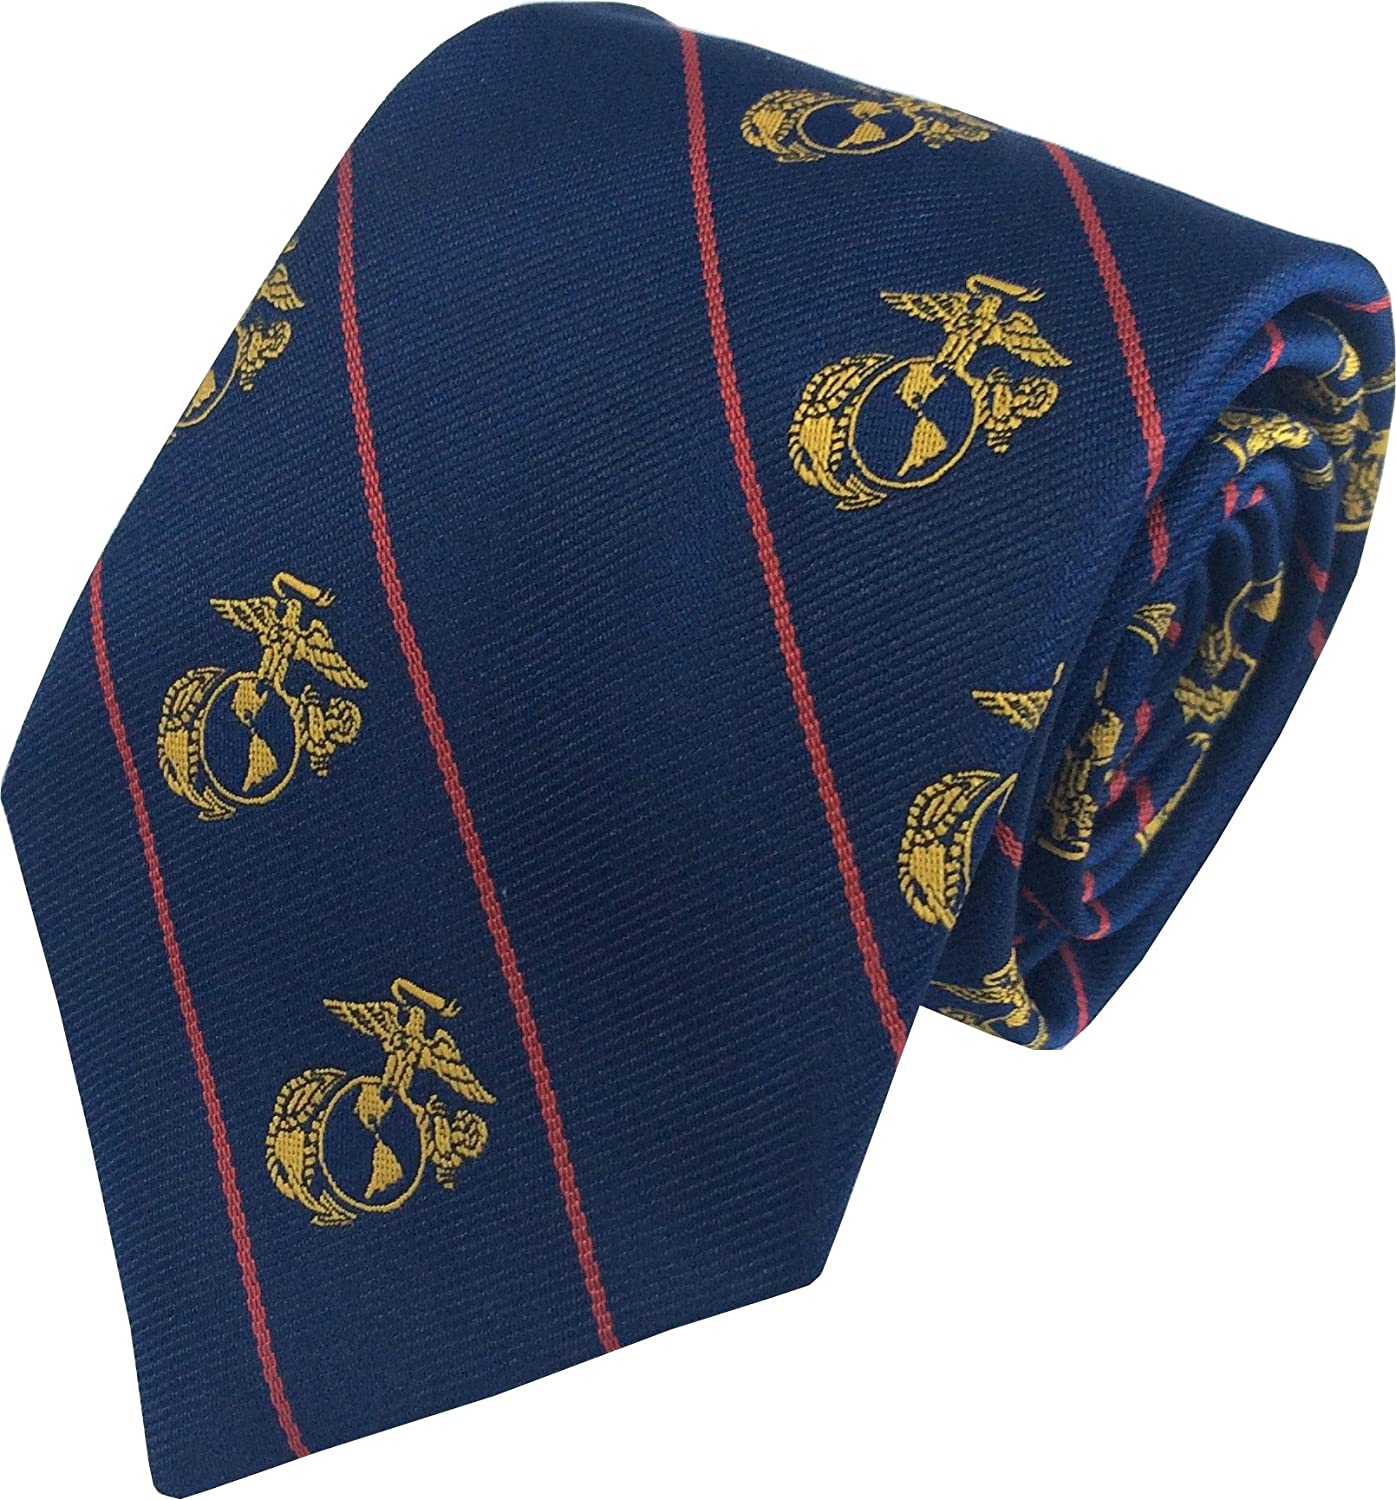 Usmc us marine corps tie at amazon mens clothing store ccuart Images